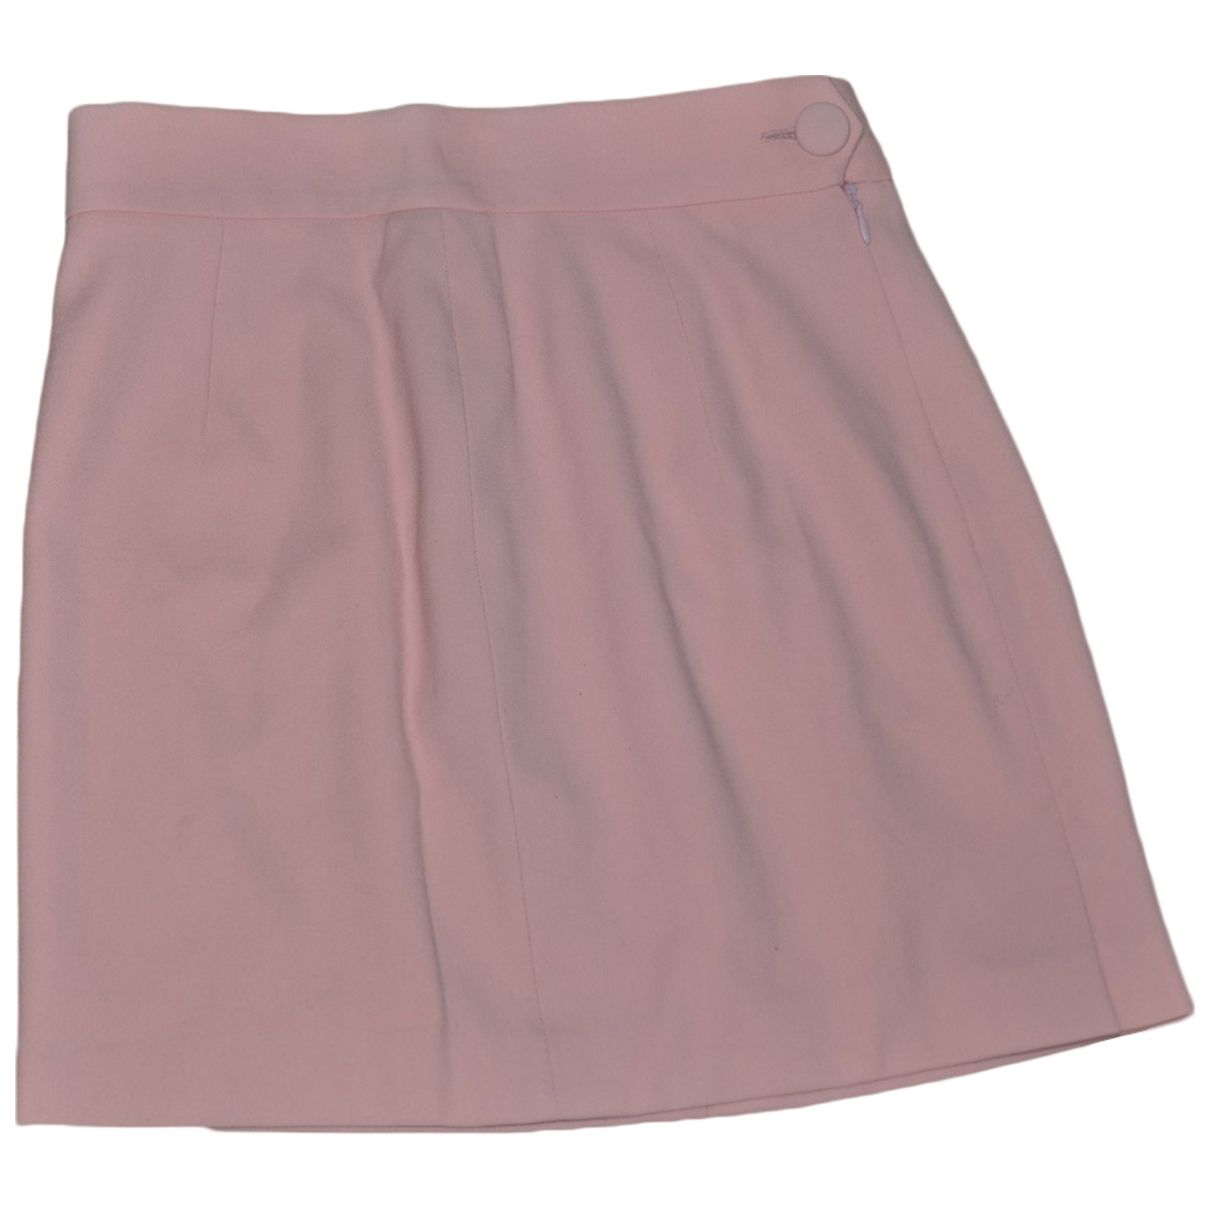 Moschino \N Pink skirt for Women 44 IT